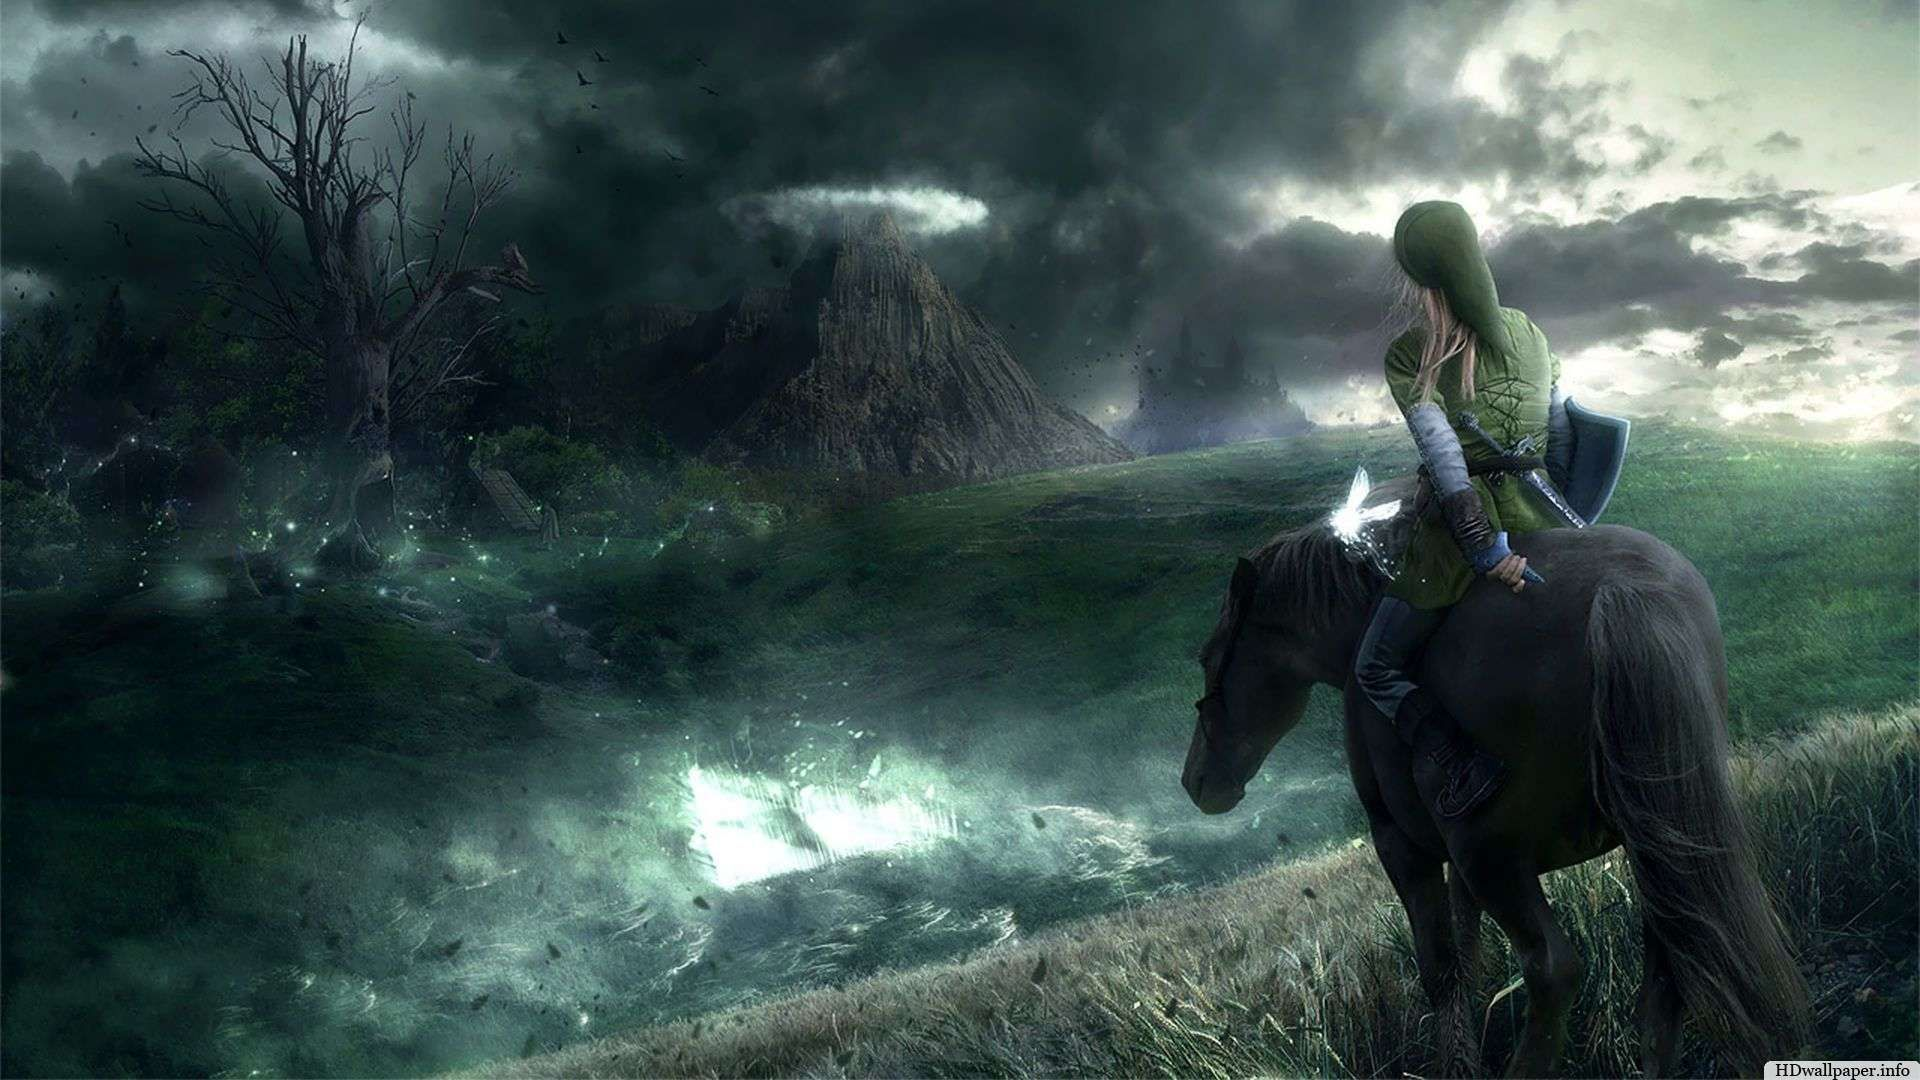 Download The Legend of Zelda Wallpapers HD Wallpapers